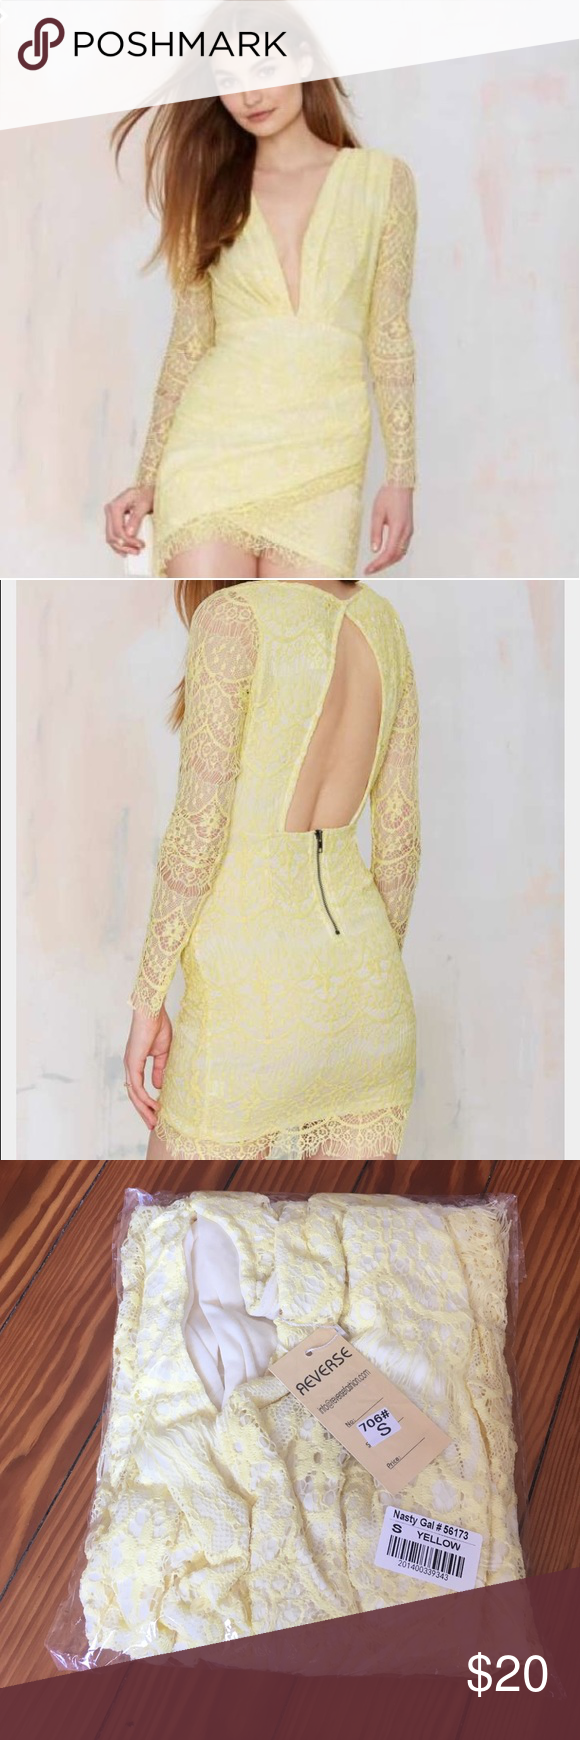 Yellow Lace Dress Yellow lace dress brand new still in wrapping size small never worn .. Bought on nasty girl Nasty Gal Dresses Mini